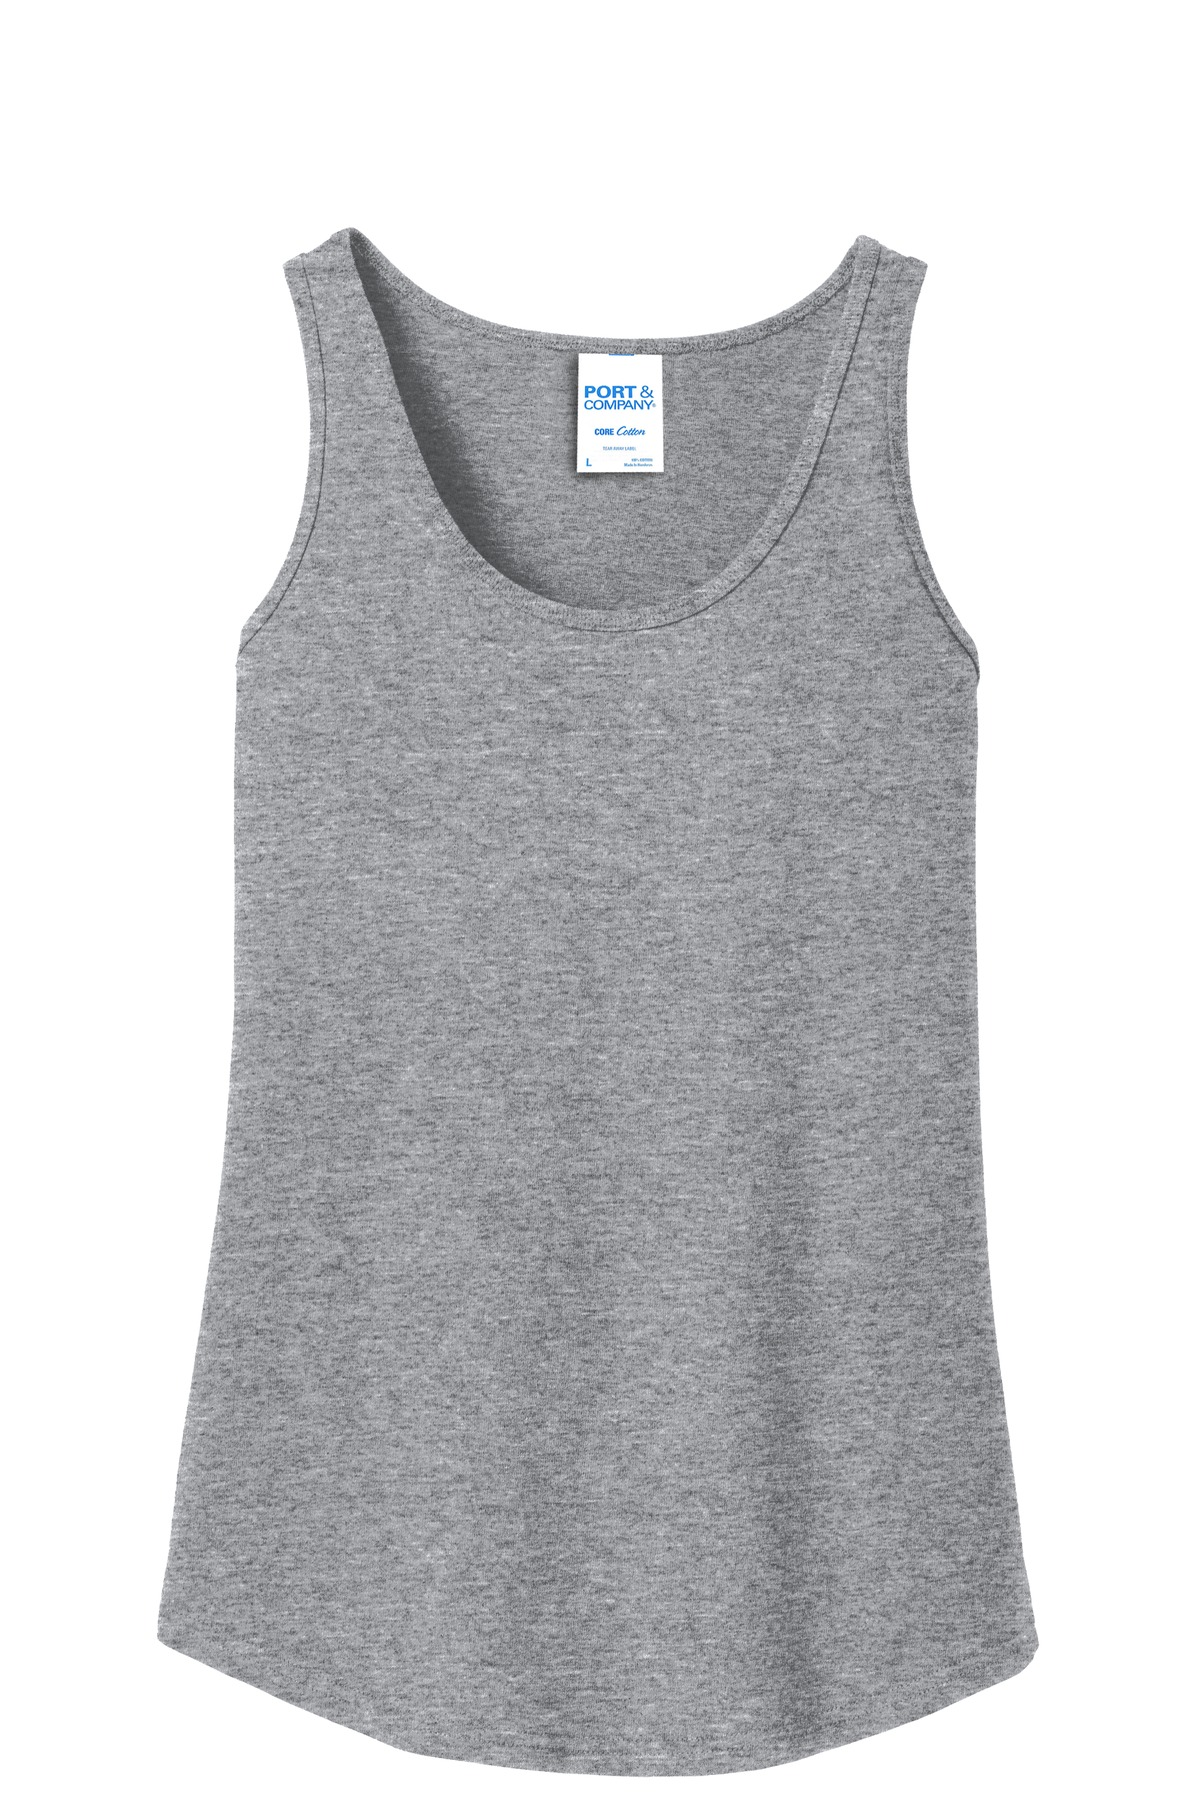 LPC54TT Port /& Company Ladies Core Cotton Tank Top